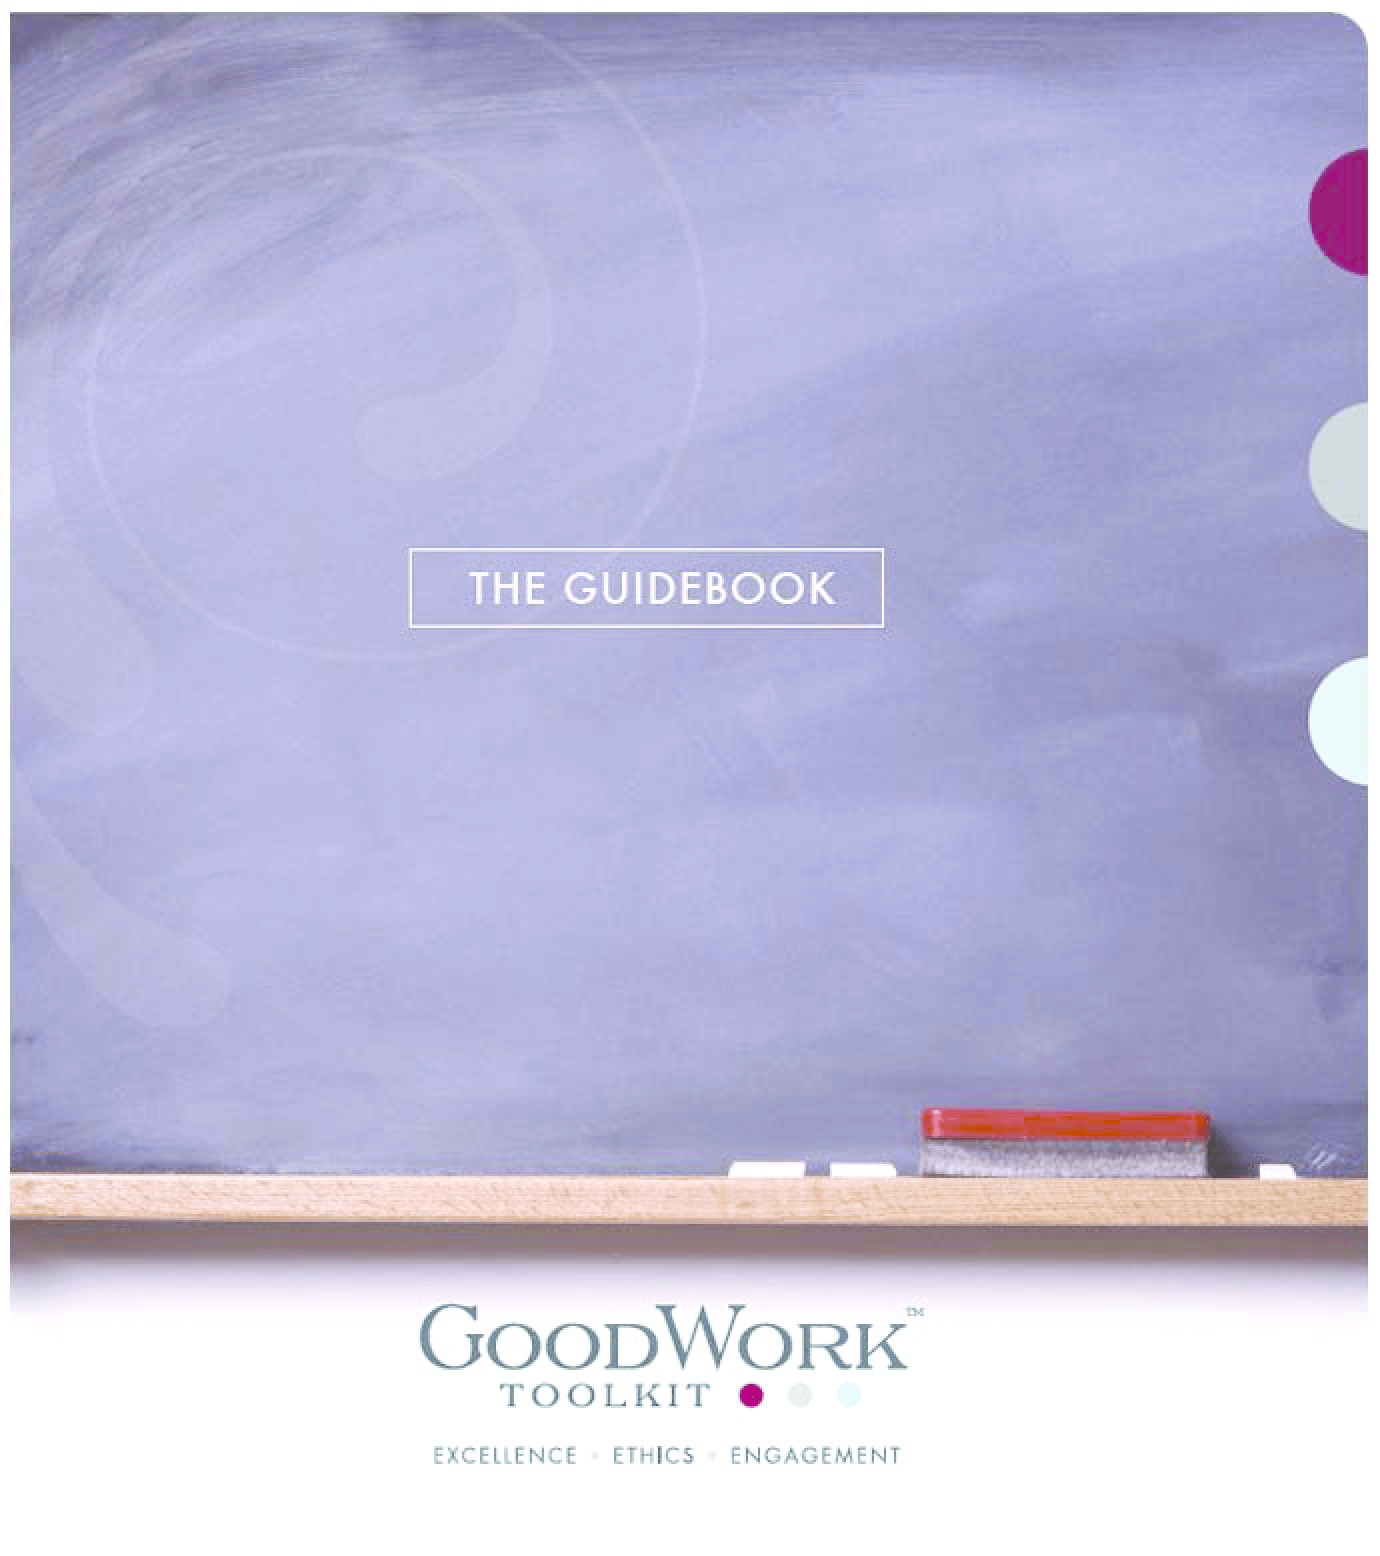 The GoodWork Toolkit